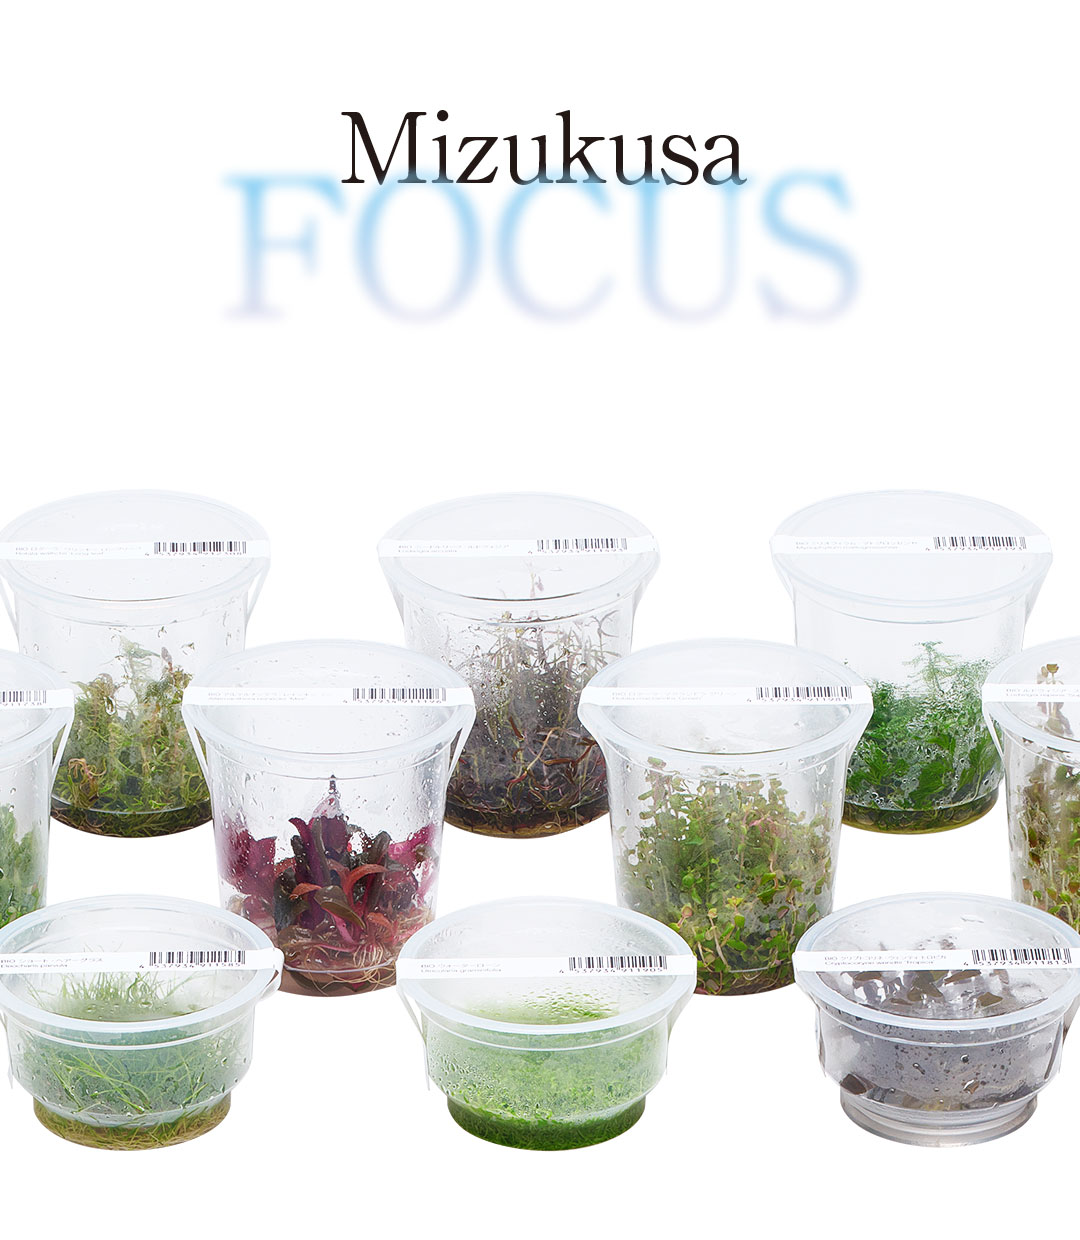 Mizukusa FOCUS 'The Increasing Variety of Liquid-Cultured Plants'